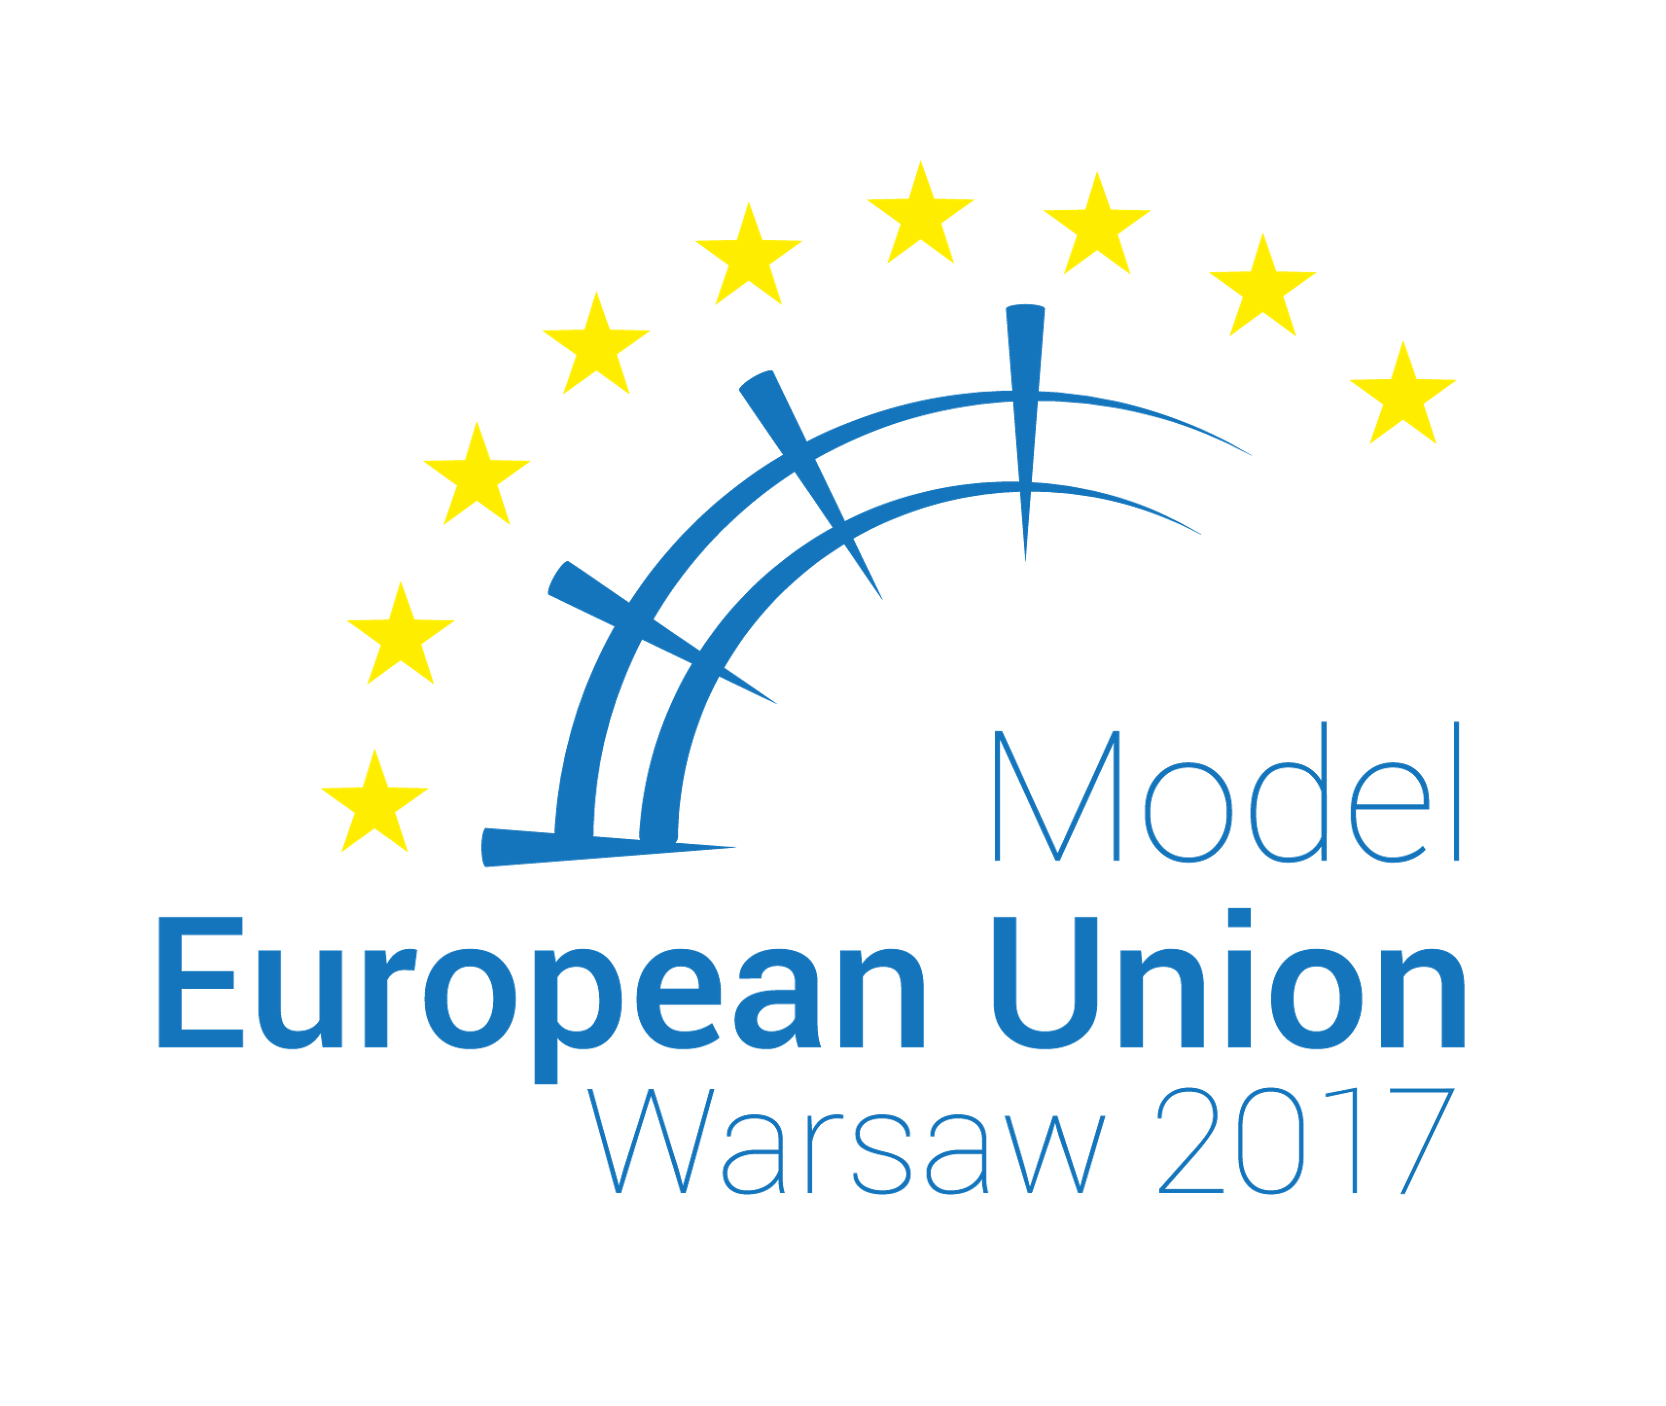 Model European Union Warsaw